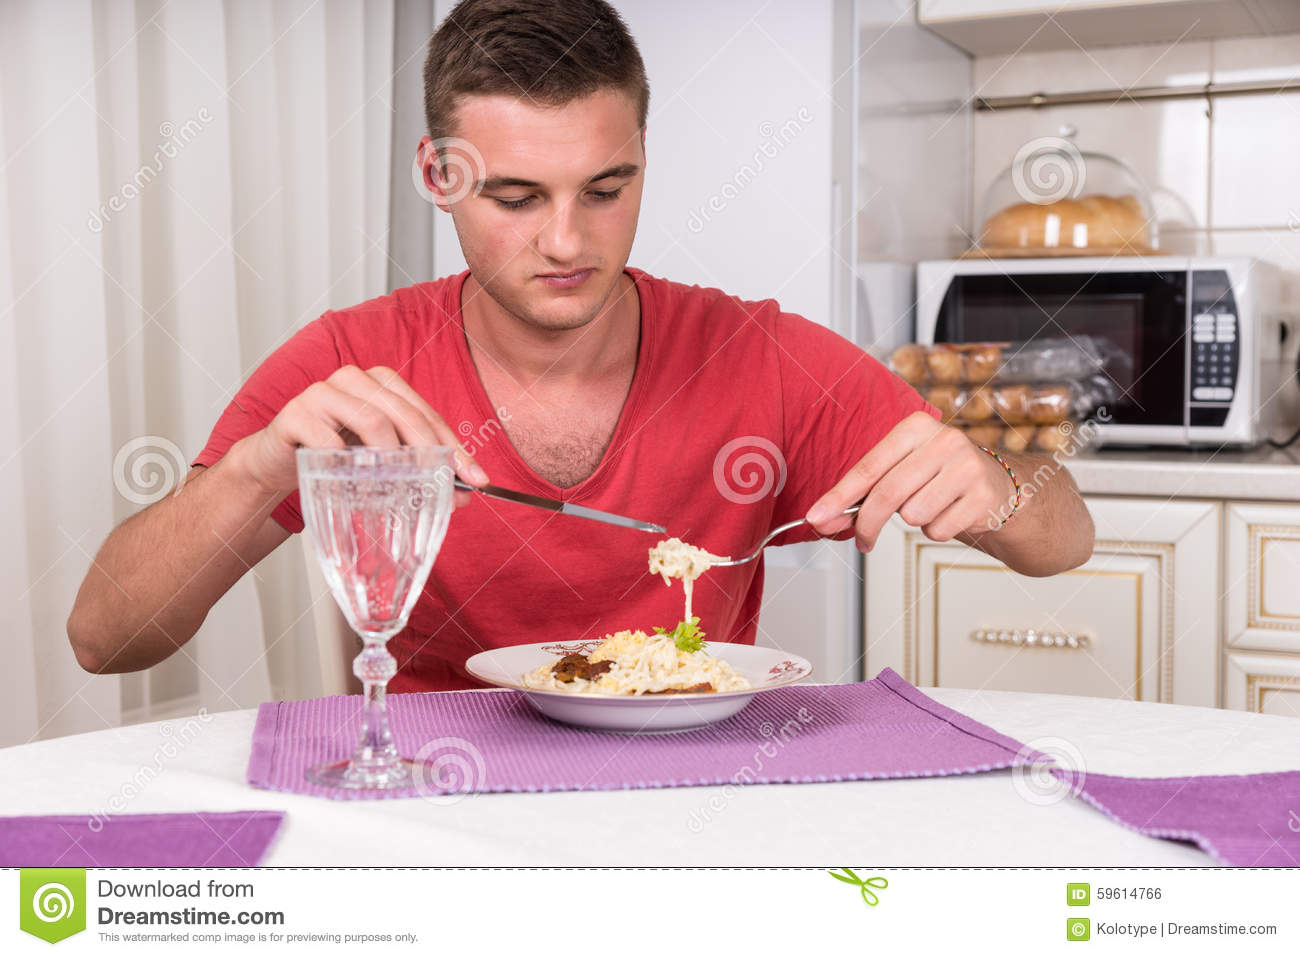 Hungry Young Man Eating Home Cooked Spaghetti Meal Stock